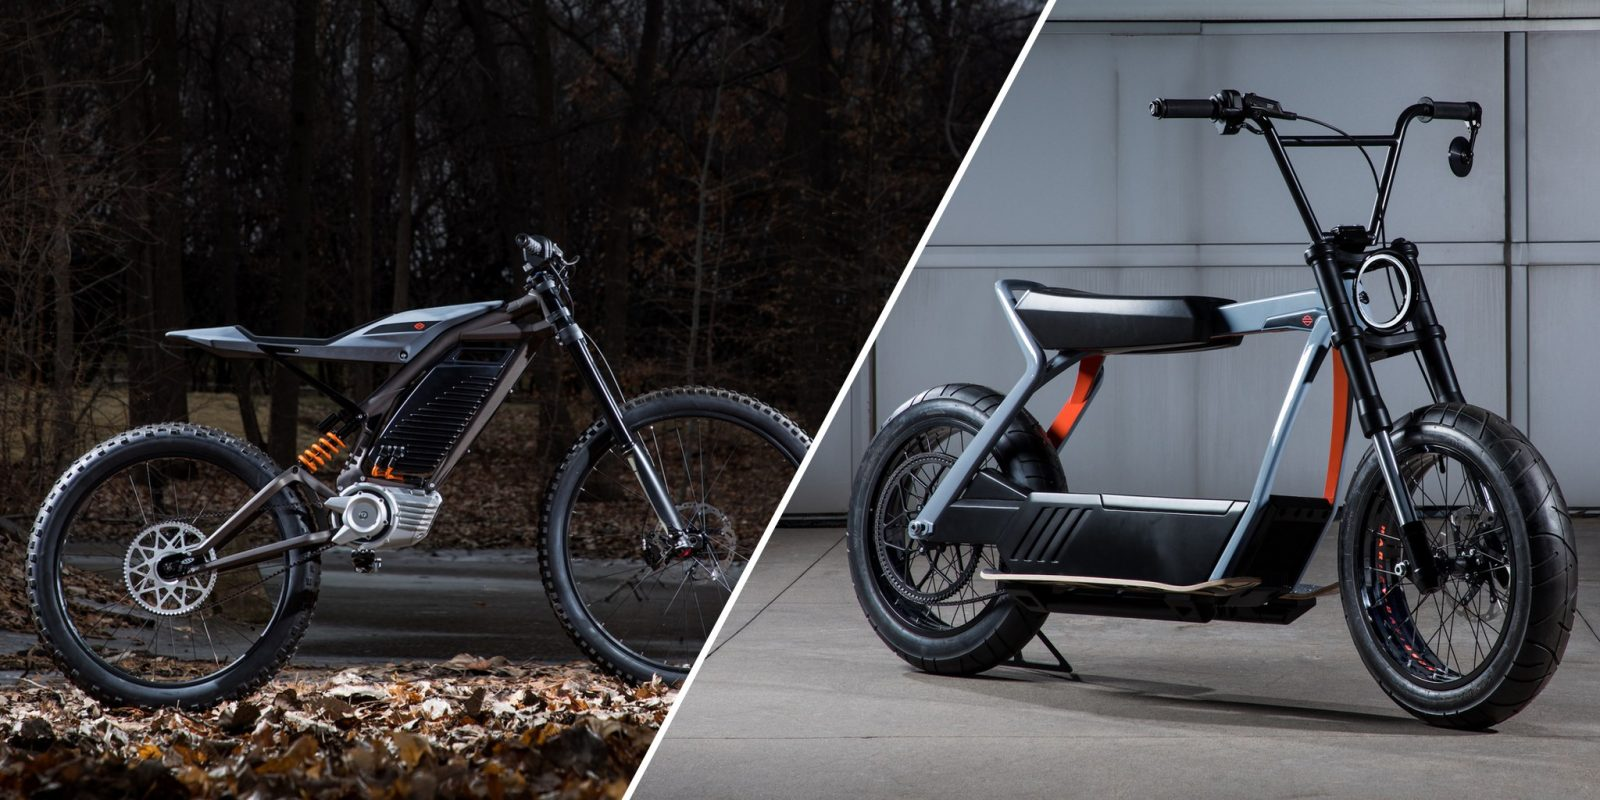 Harley-Davidson tests new electric dirt bike and scooter at